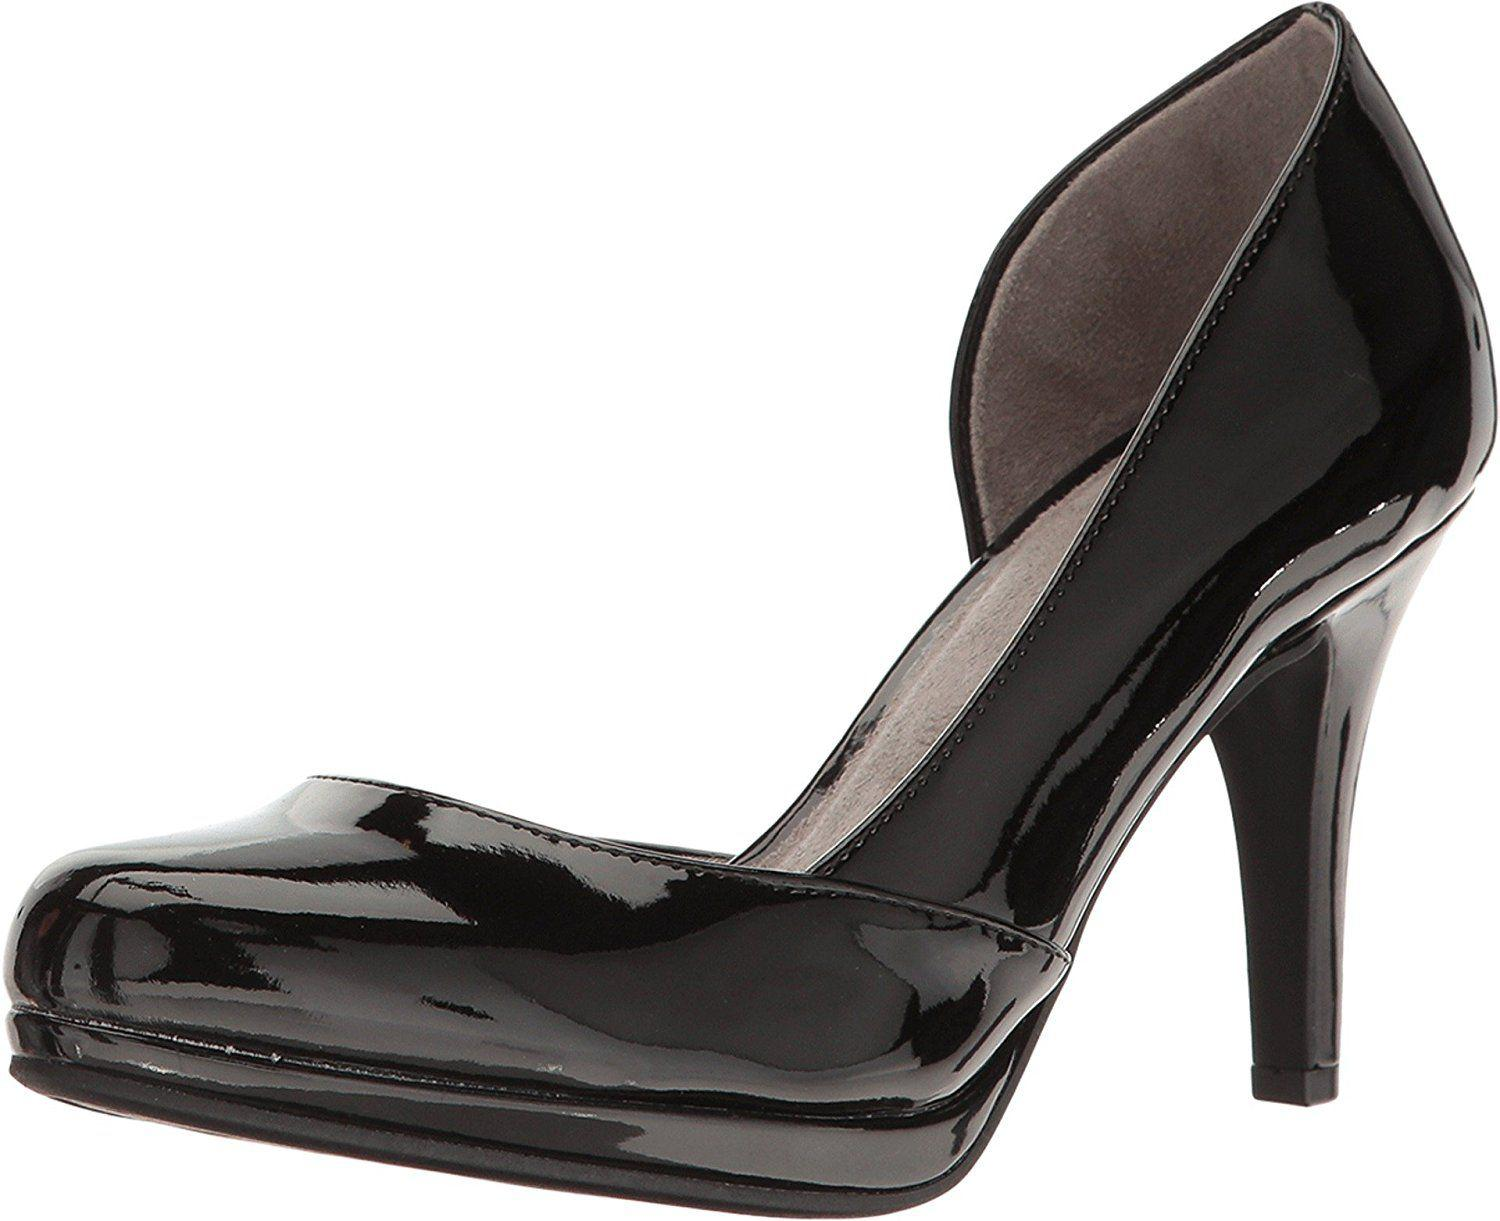 09bfc0a2729d Lyst - Lifestride Womens X-blaze Closed Toe D-orsay Pumps in Black